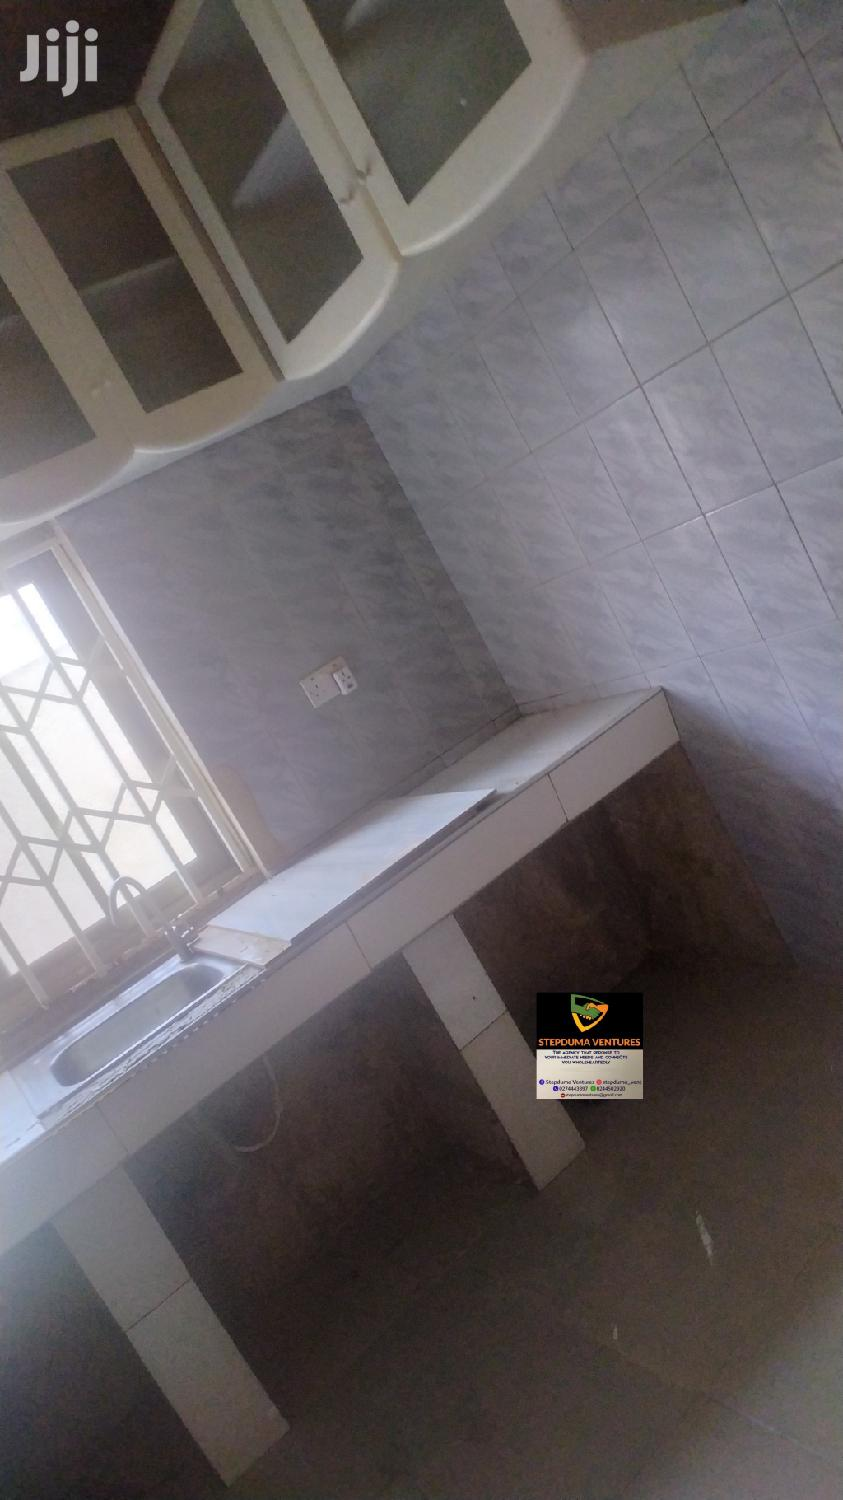 2 Bedrooms At Atasomanso Close To Andygrace Sch.   Houses & Apartments For Rent for sale in Kumasi Metropolitan, Ashanti, Ghana